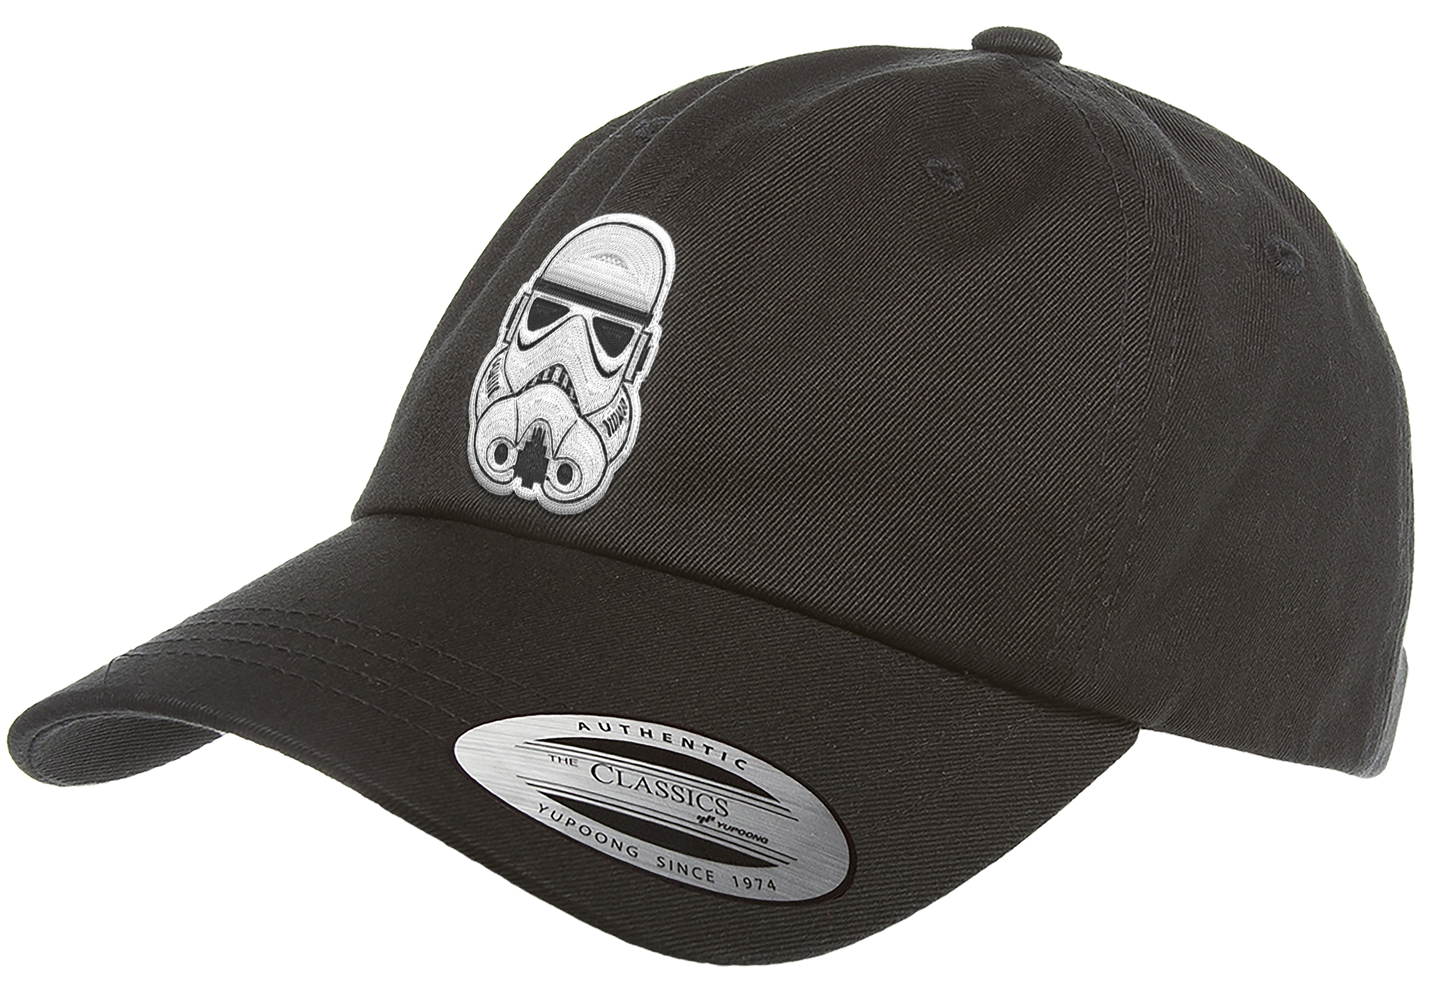 OriginalJpeg_17STRW00369C-001-EMBROIDERED-TROOPER.png